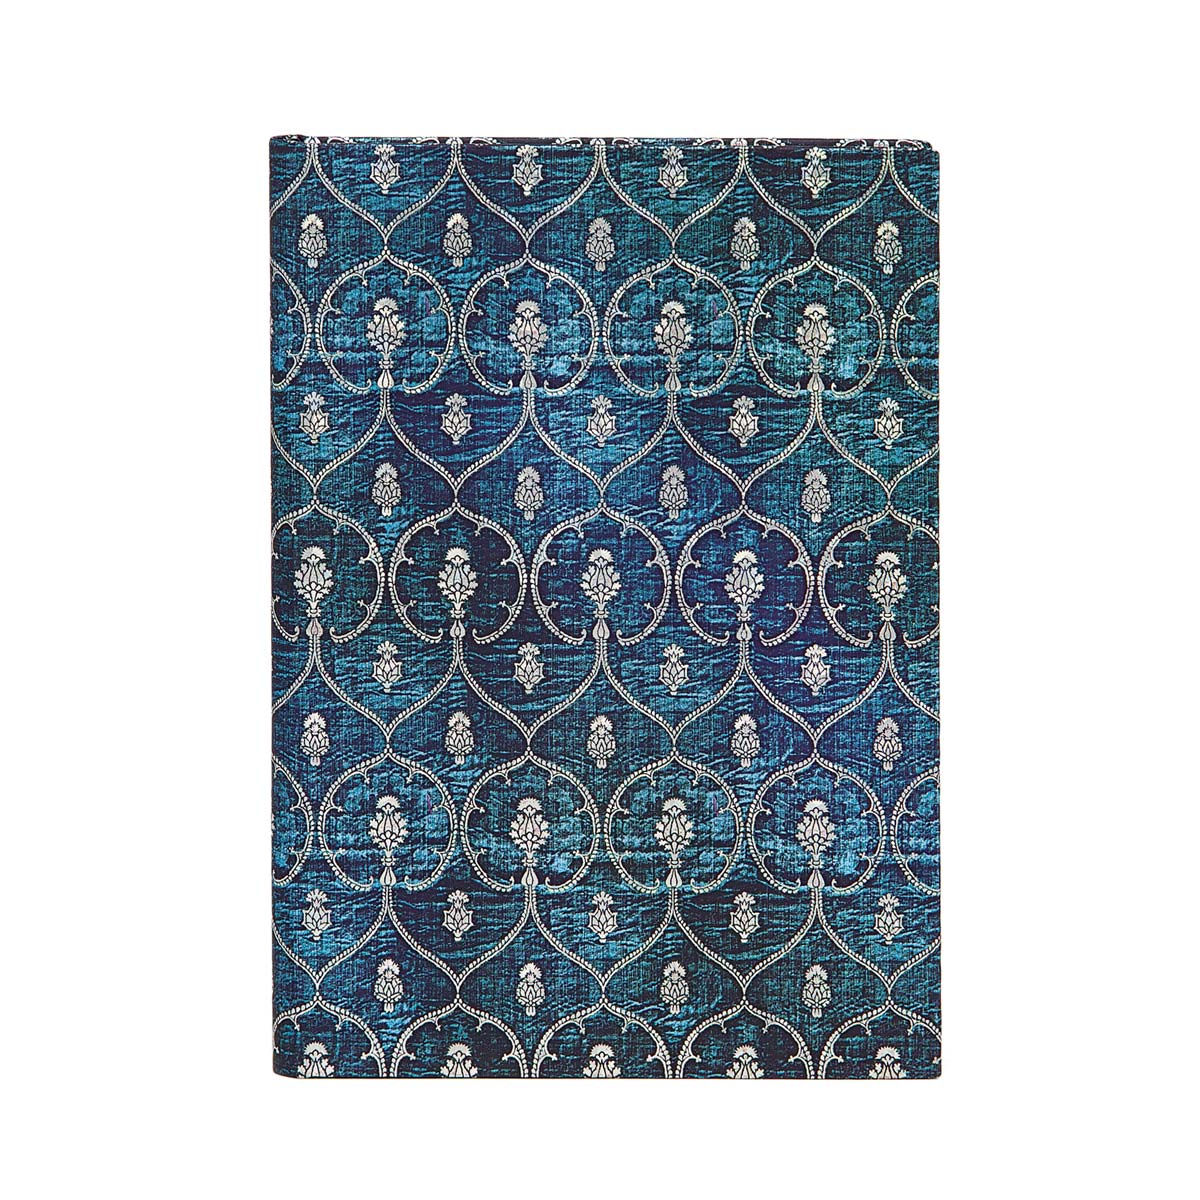 Paperblanks Blue Velvet Midi 5 x 7 Inch Journal